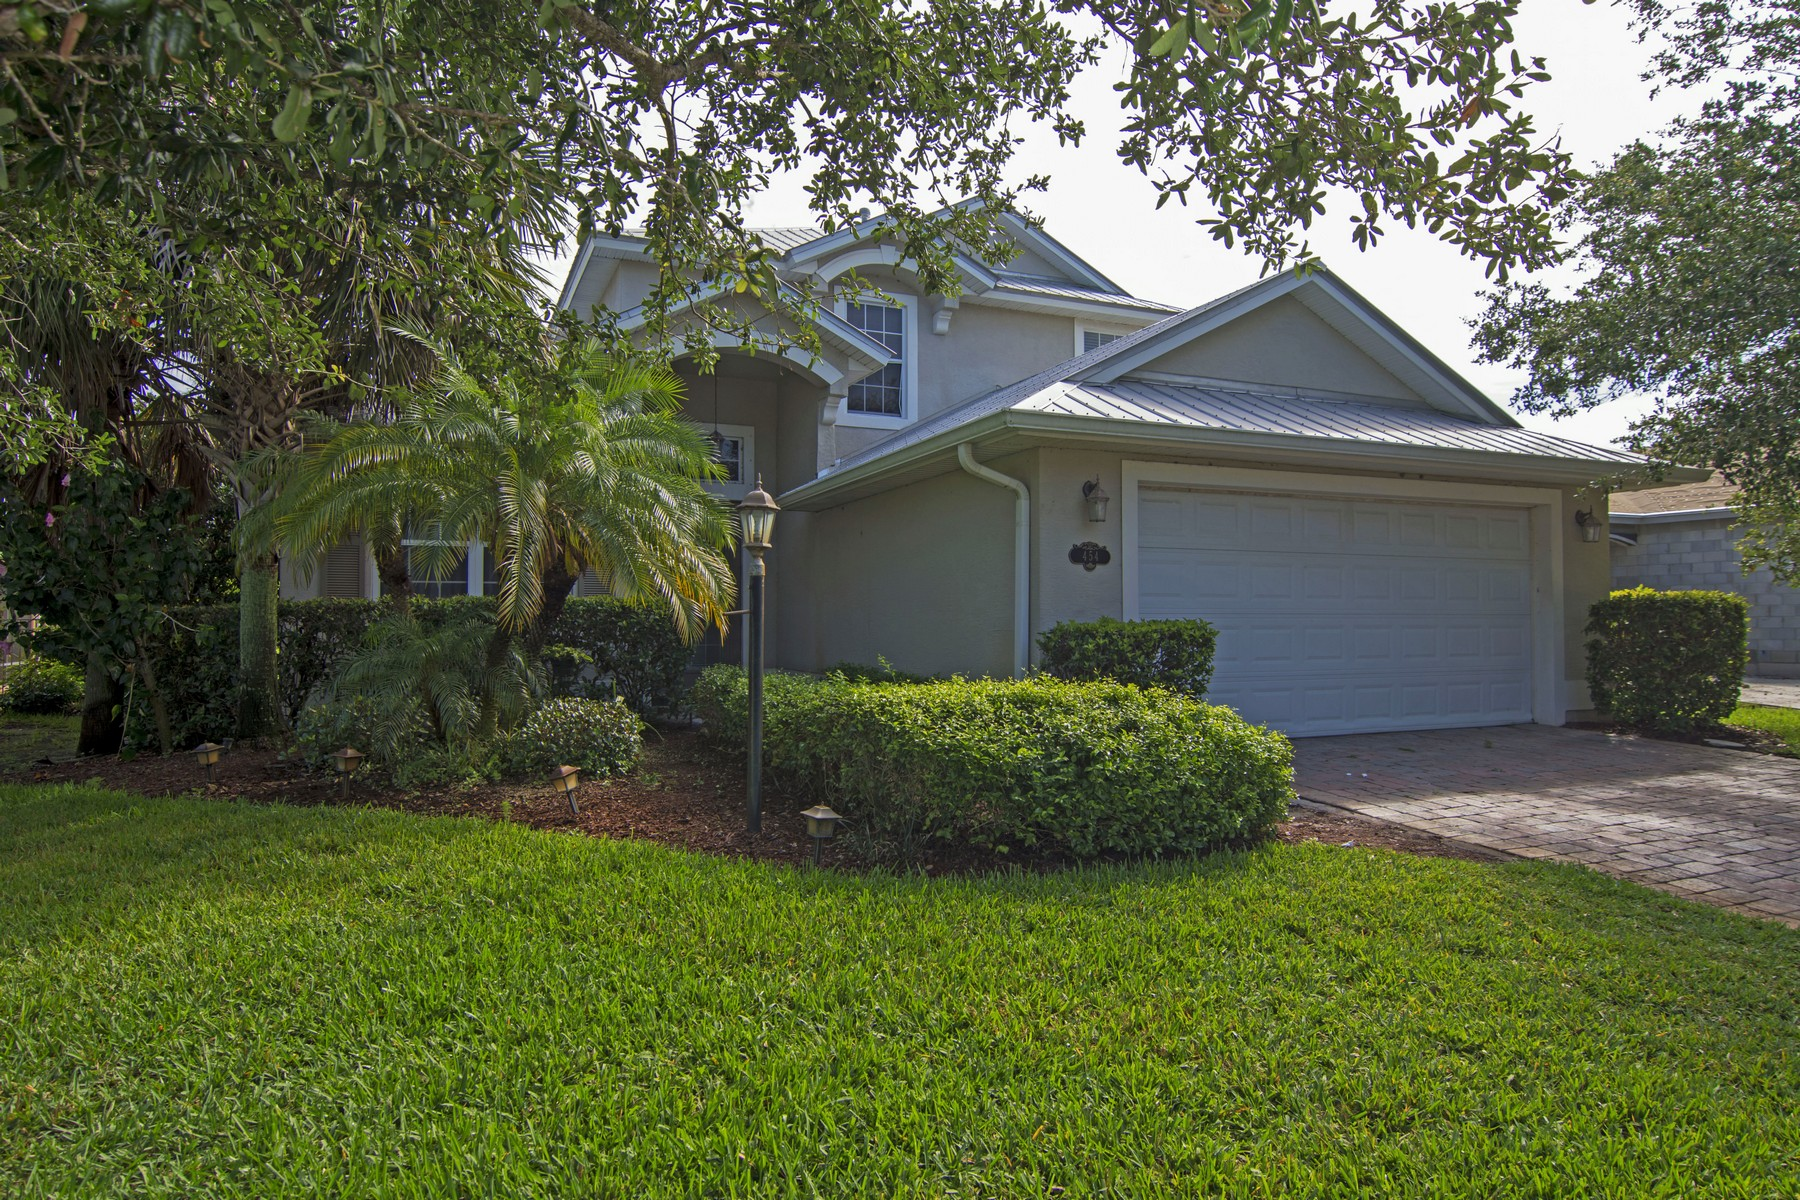 Single Family Home for Sale at Former Model, Dramatic & Spacious, Pool! 454 11th Square SW Vero Beach, Florida 32962 United States